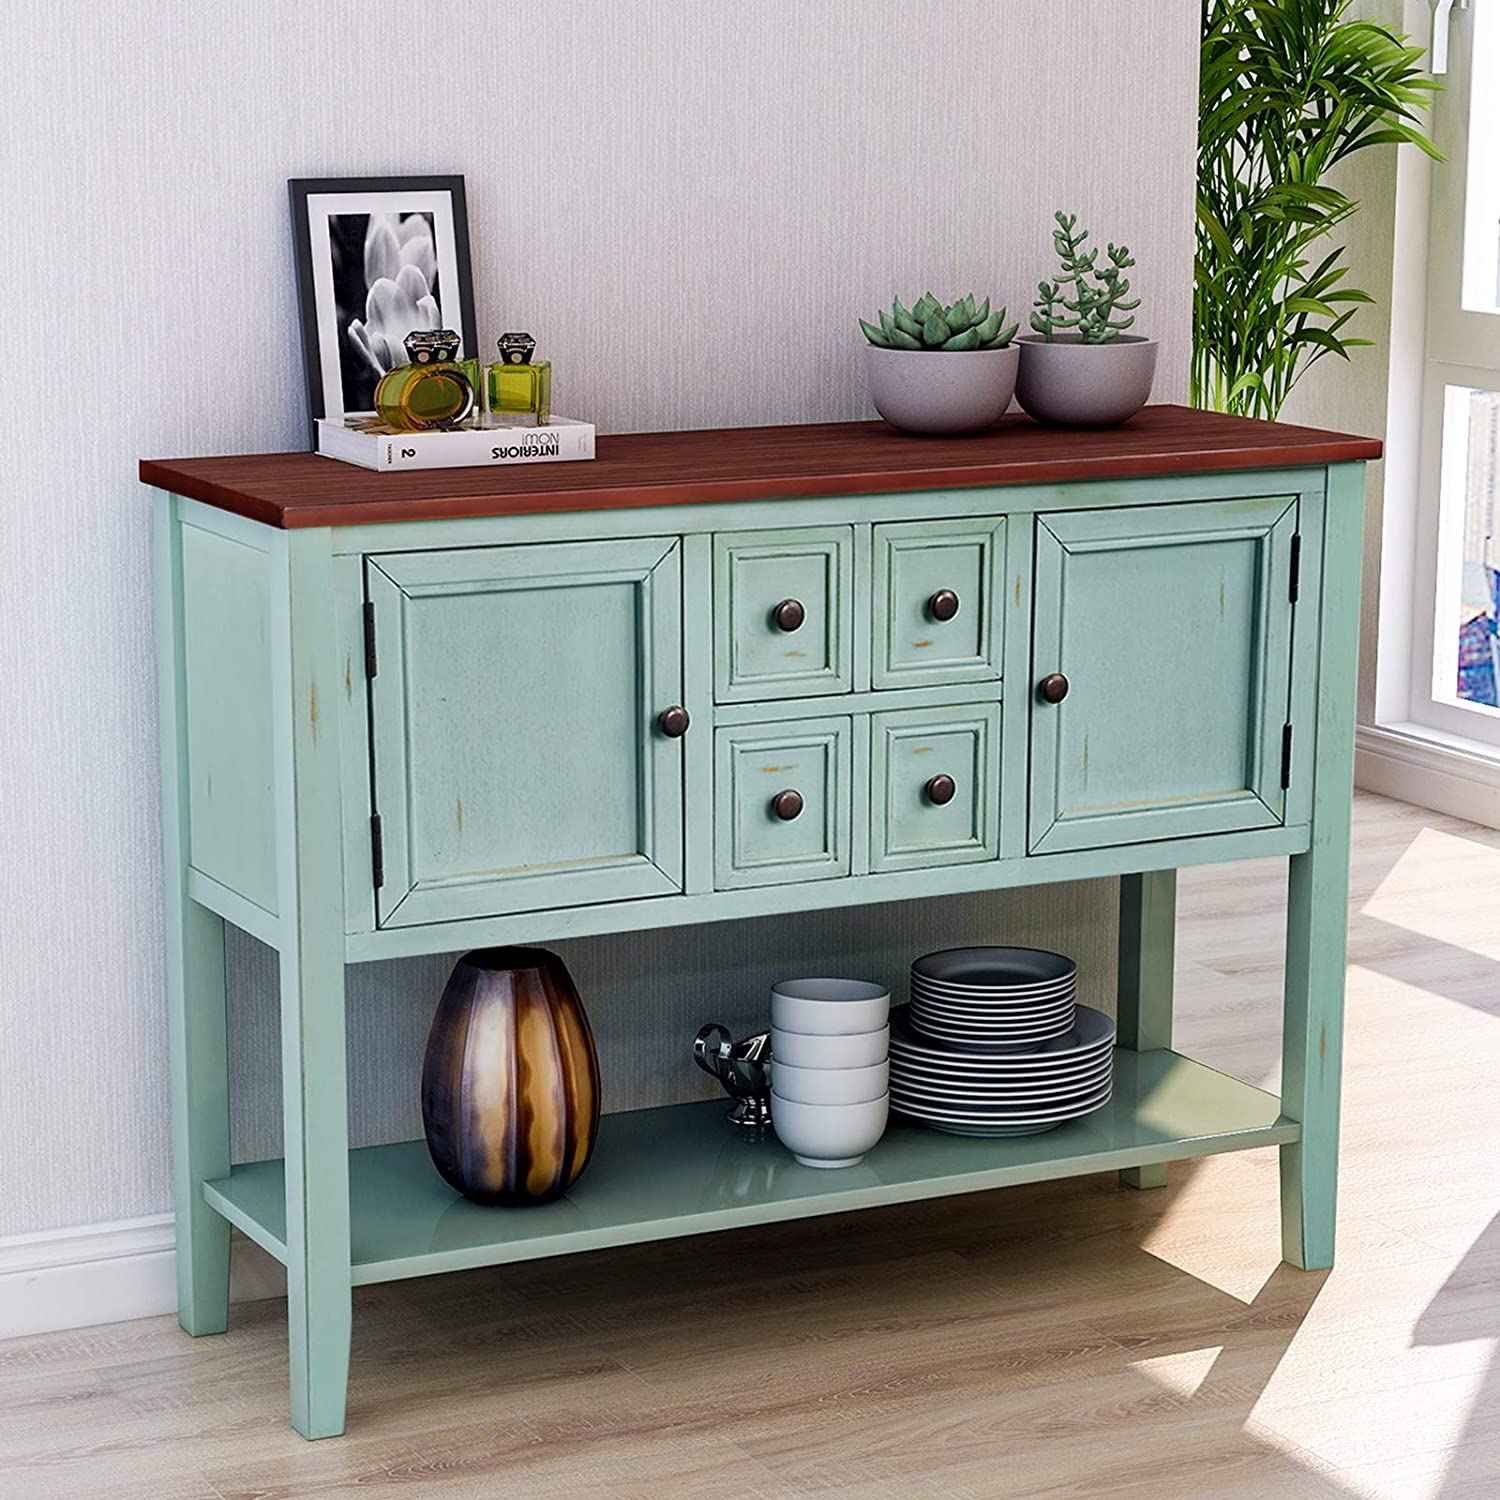 P PURLOVE Console Table Buffet Table with Storage Drawers Cabinets and Bottom Shelf (Antique Blue)